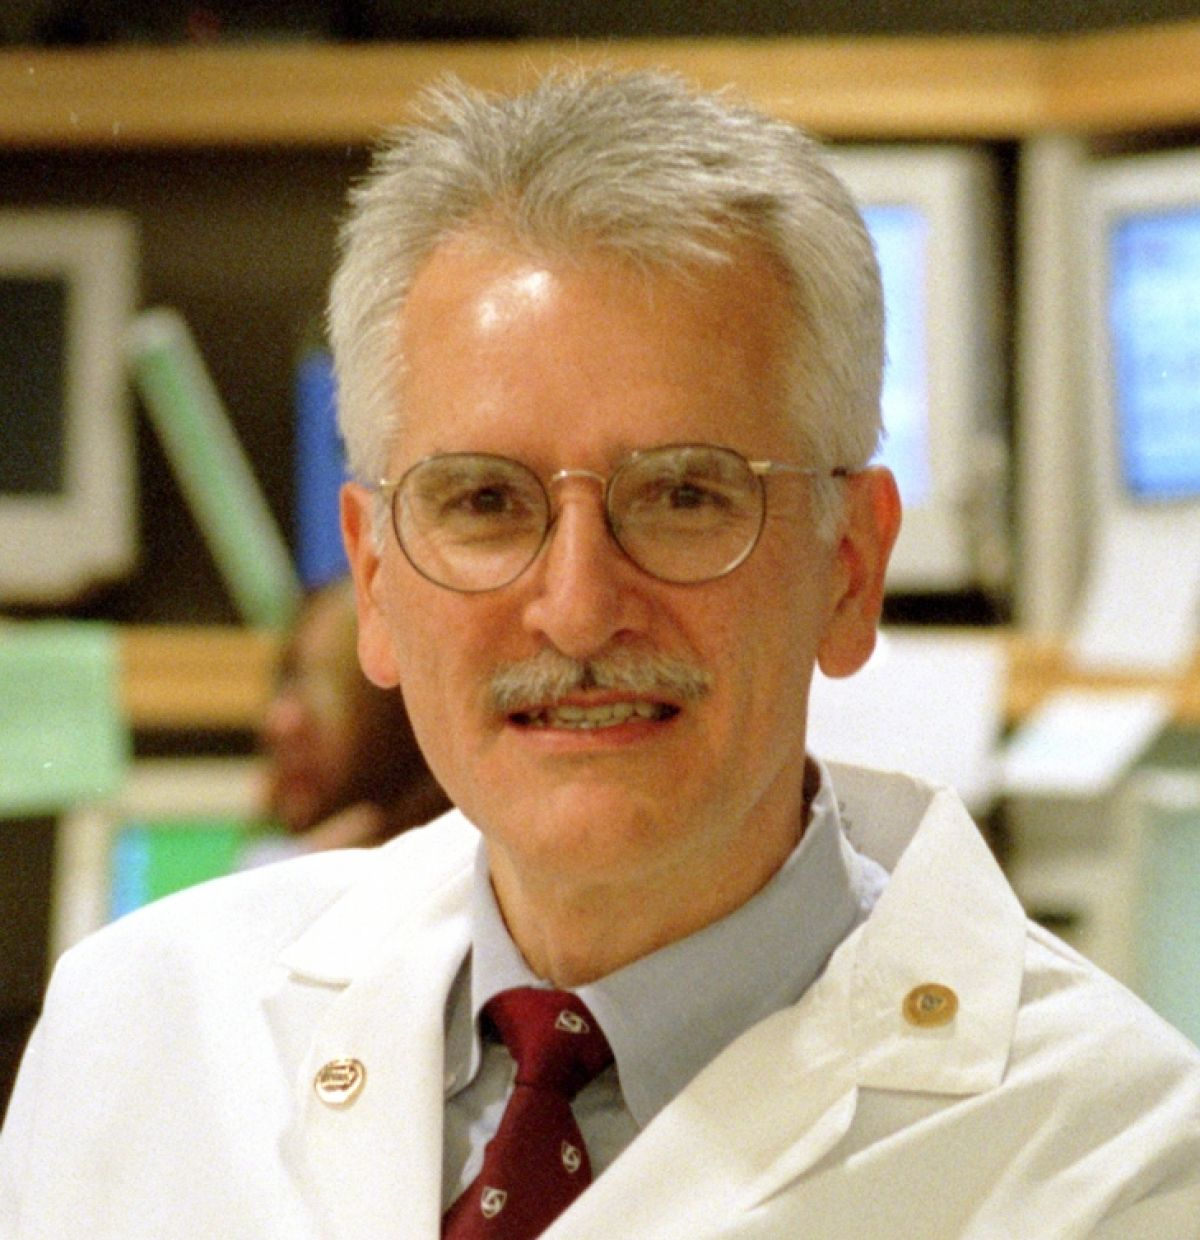 Private: Charles A. Czeisler, MD, PhD